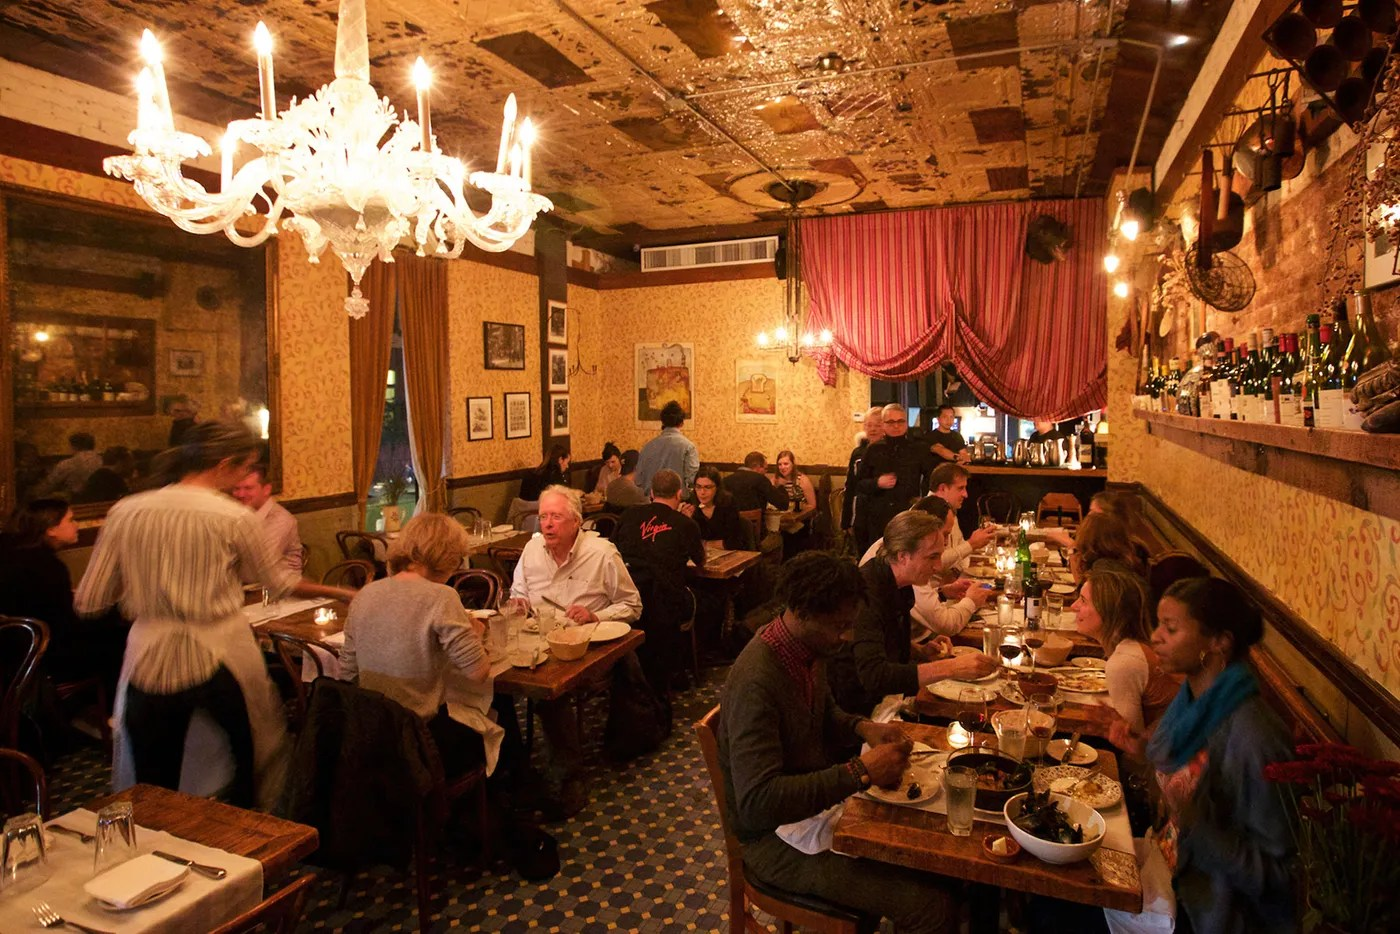 La Cucina Restaurant Brooklyn Ny The Absolute Best Restaurants In Park Slope Brooklyn Nyc